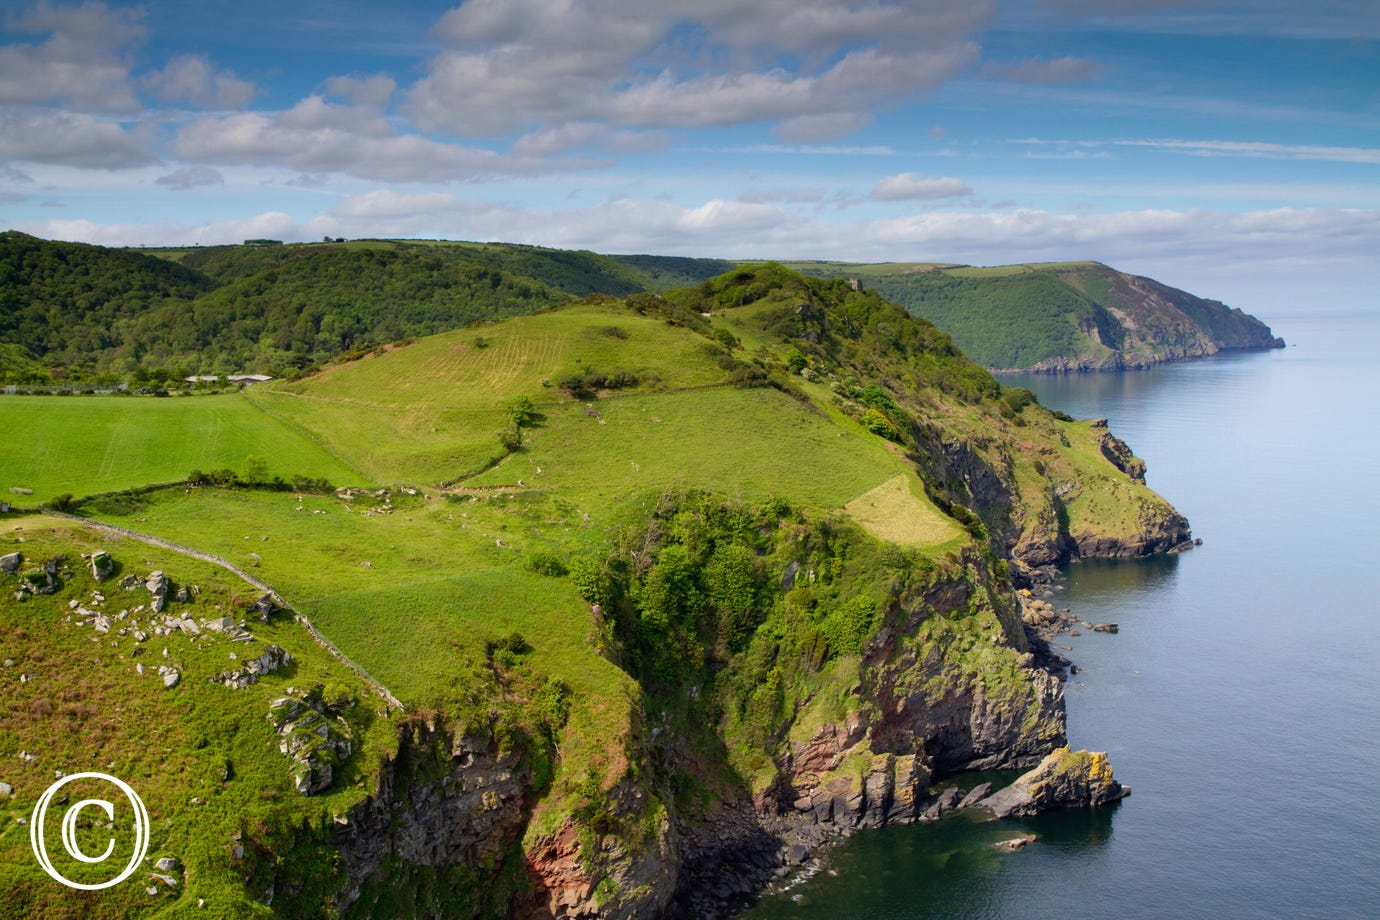 Valley of Rocks is just a short drive away